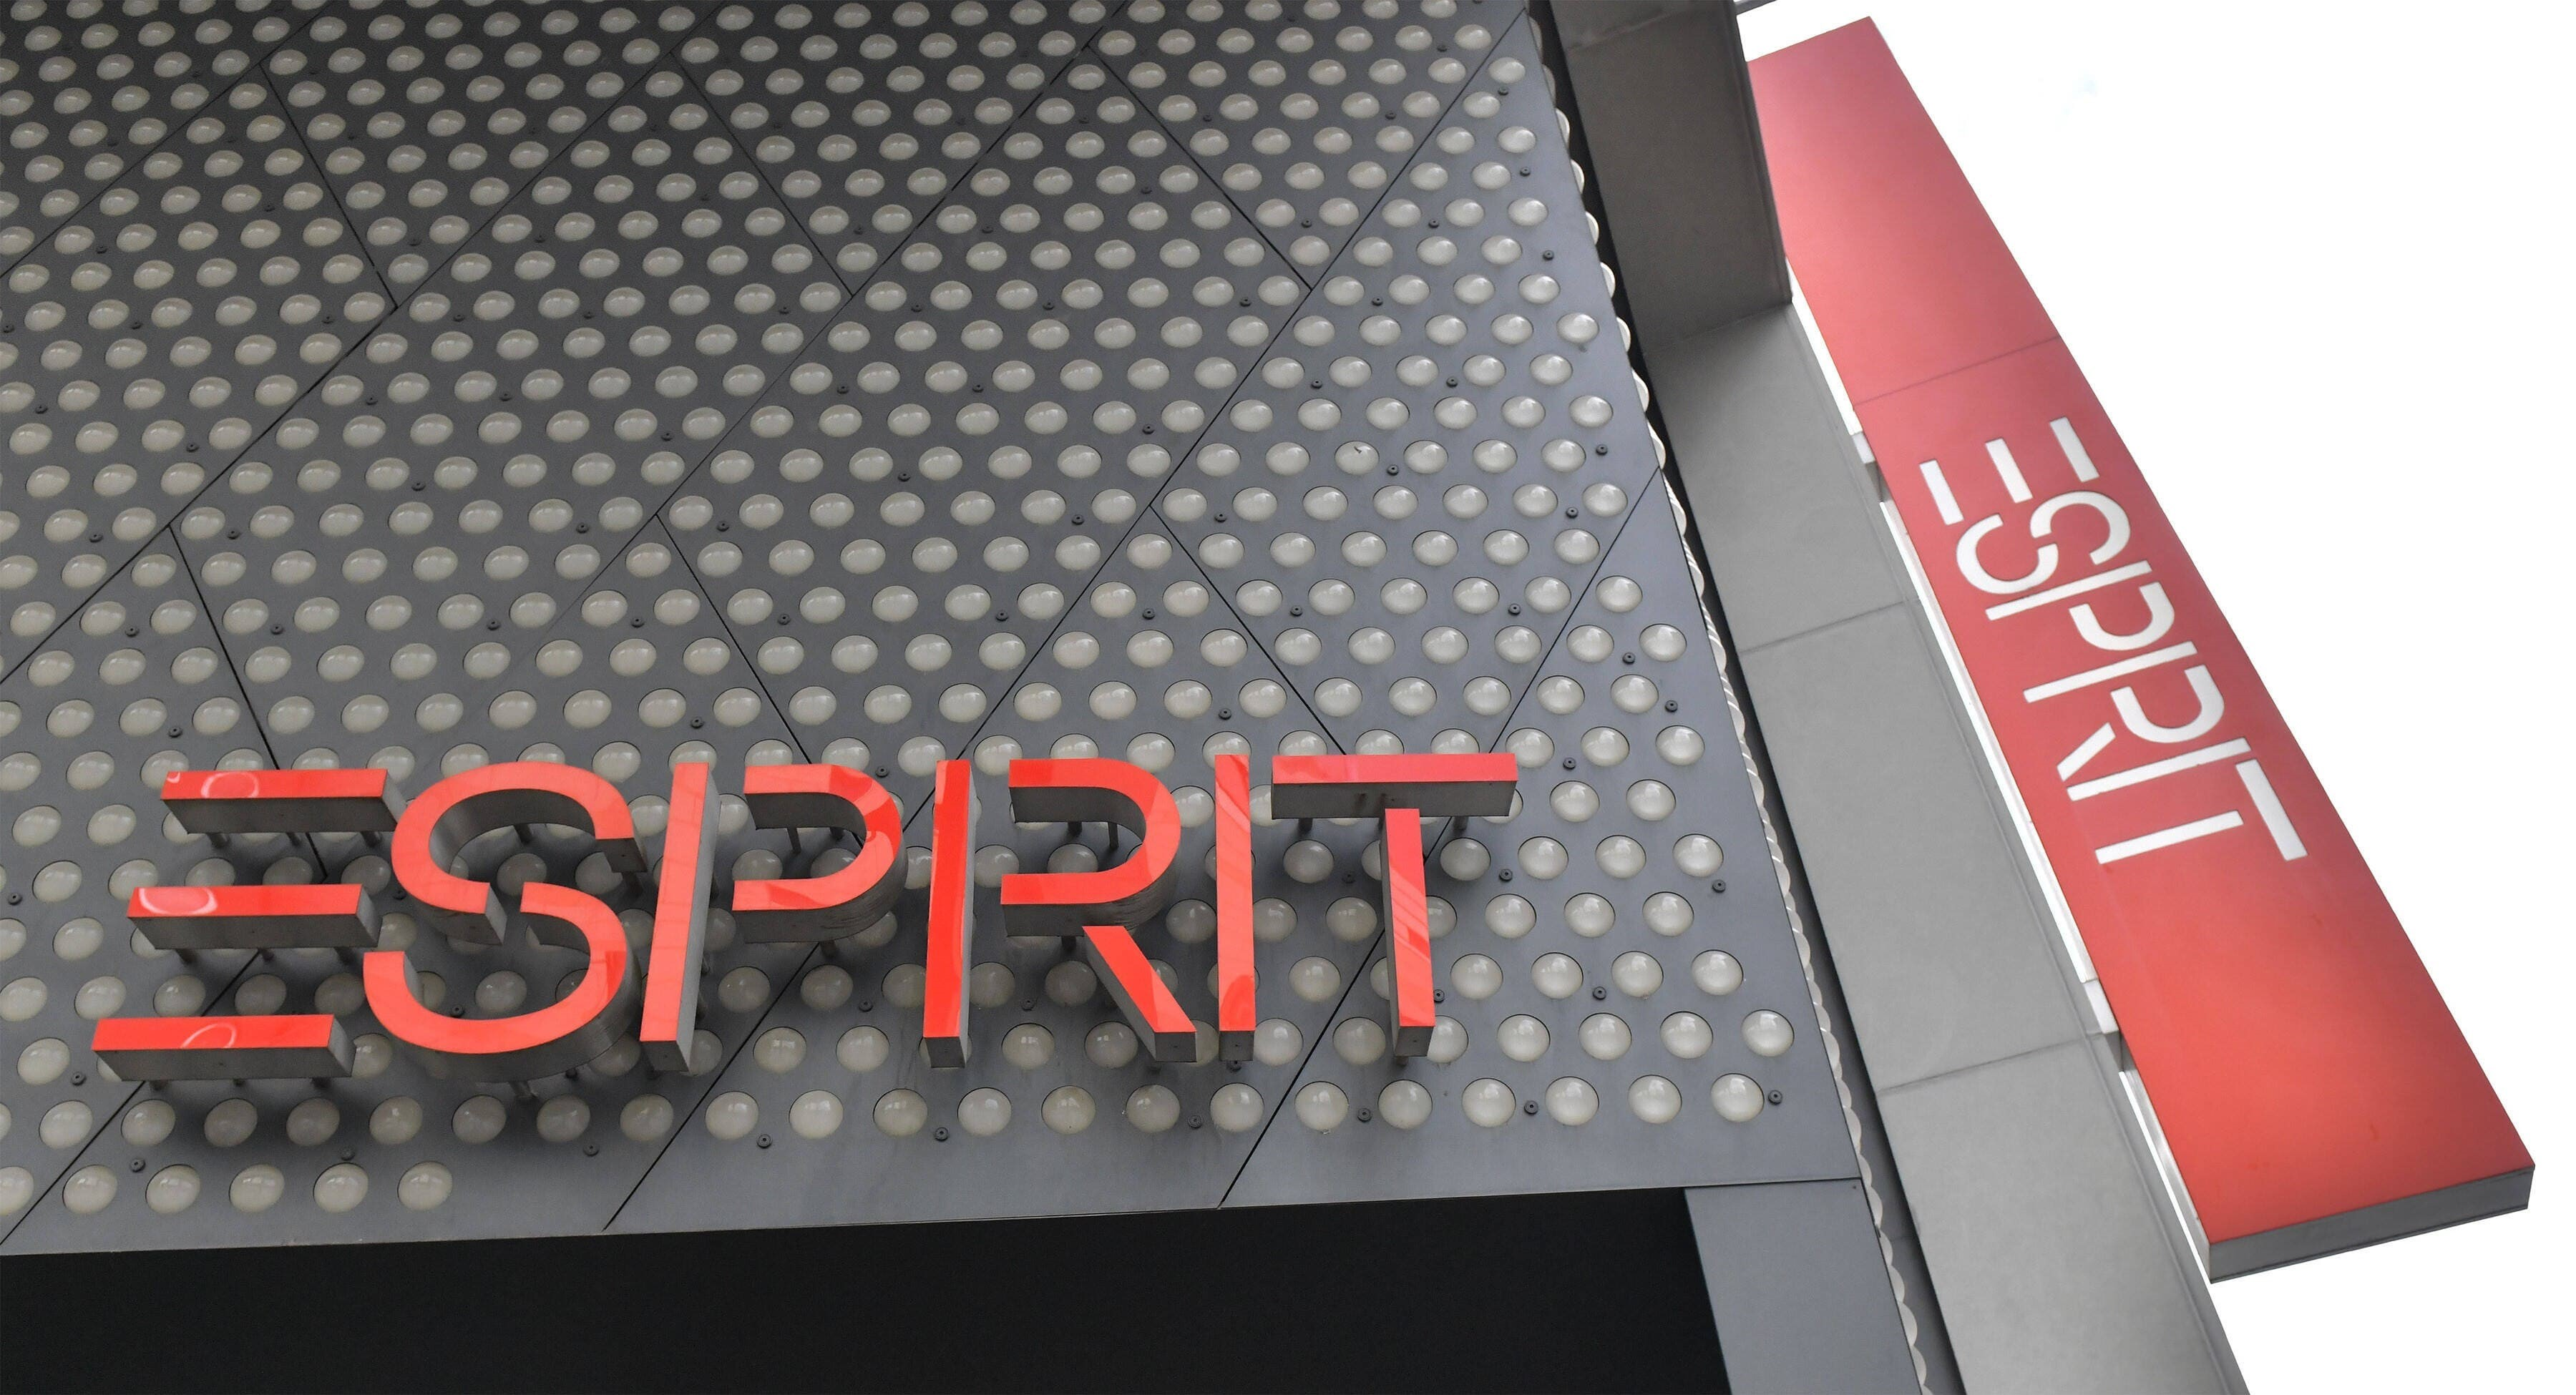 Esprit: 2300 jobs affected